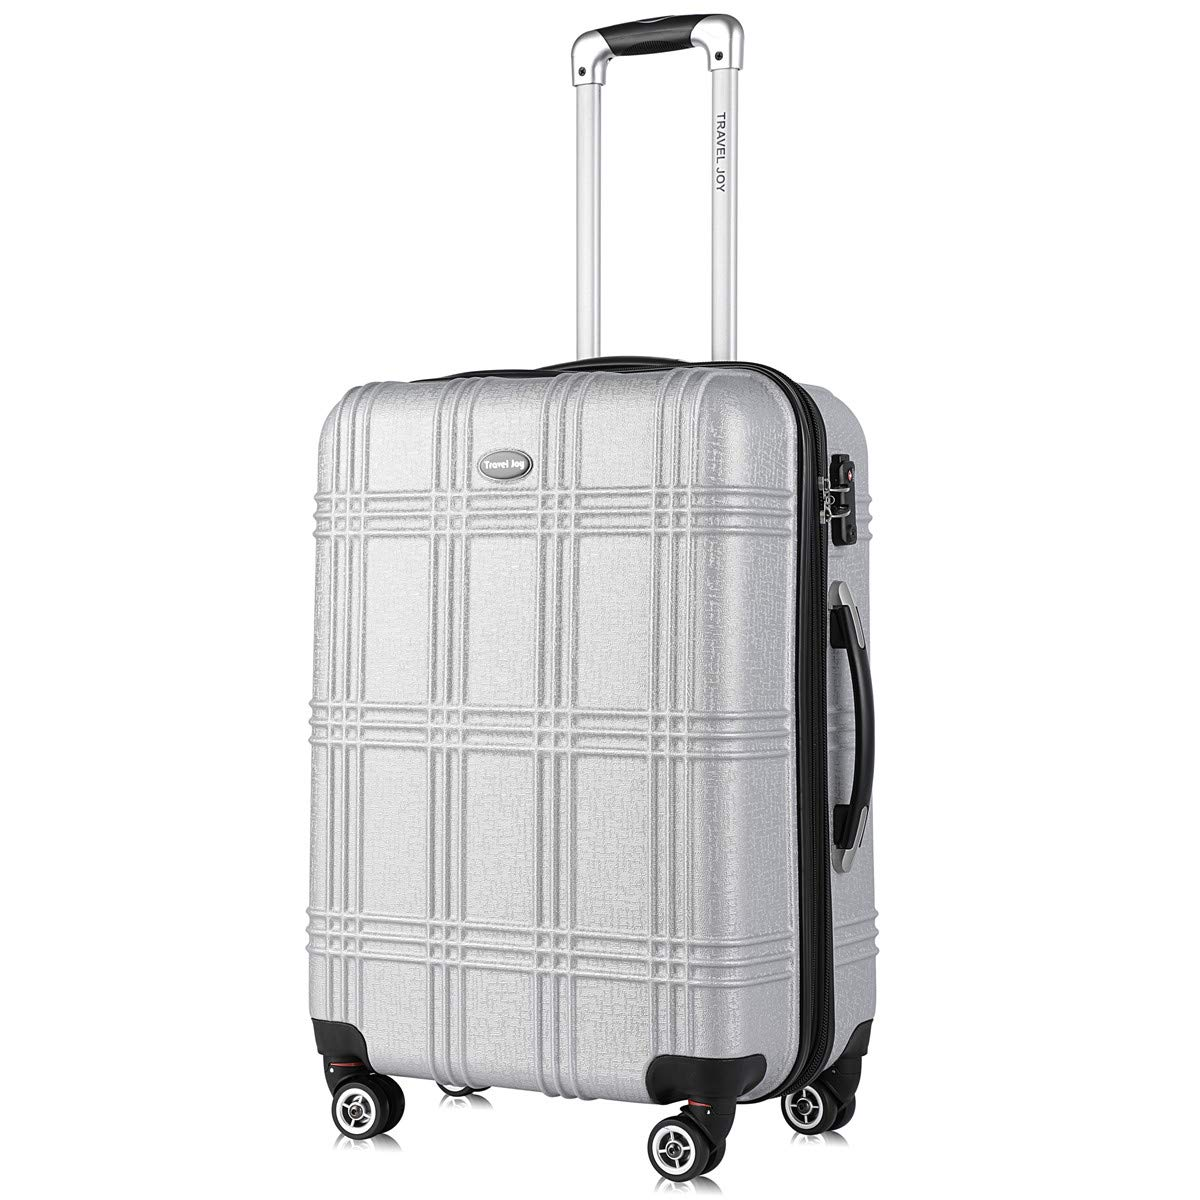 Expandable Spinner Luggage Set,TSA lightweight Hardside Luggage Sets, 20'' 24''28 inches Luggage (SILVER-1, 20 inches)